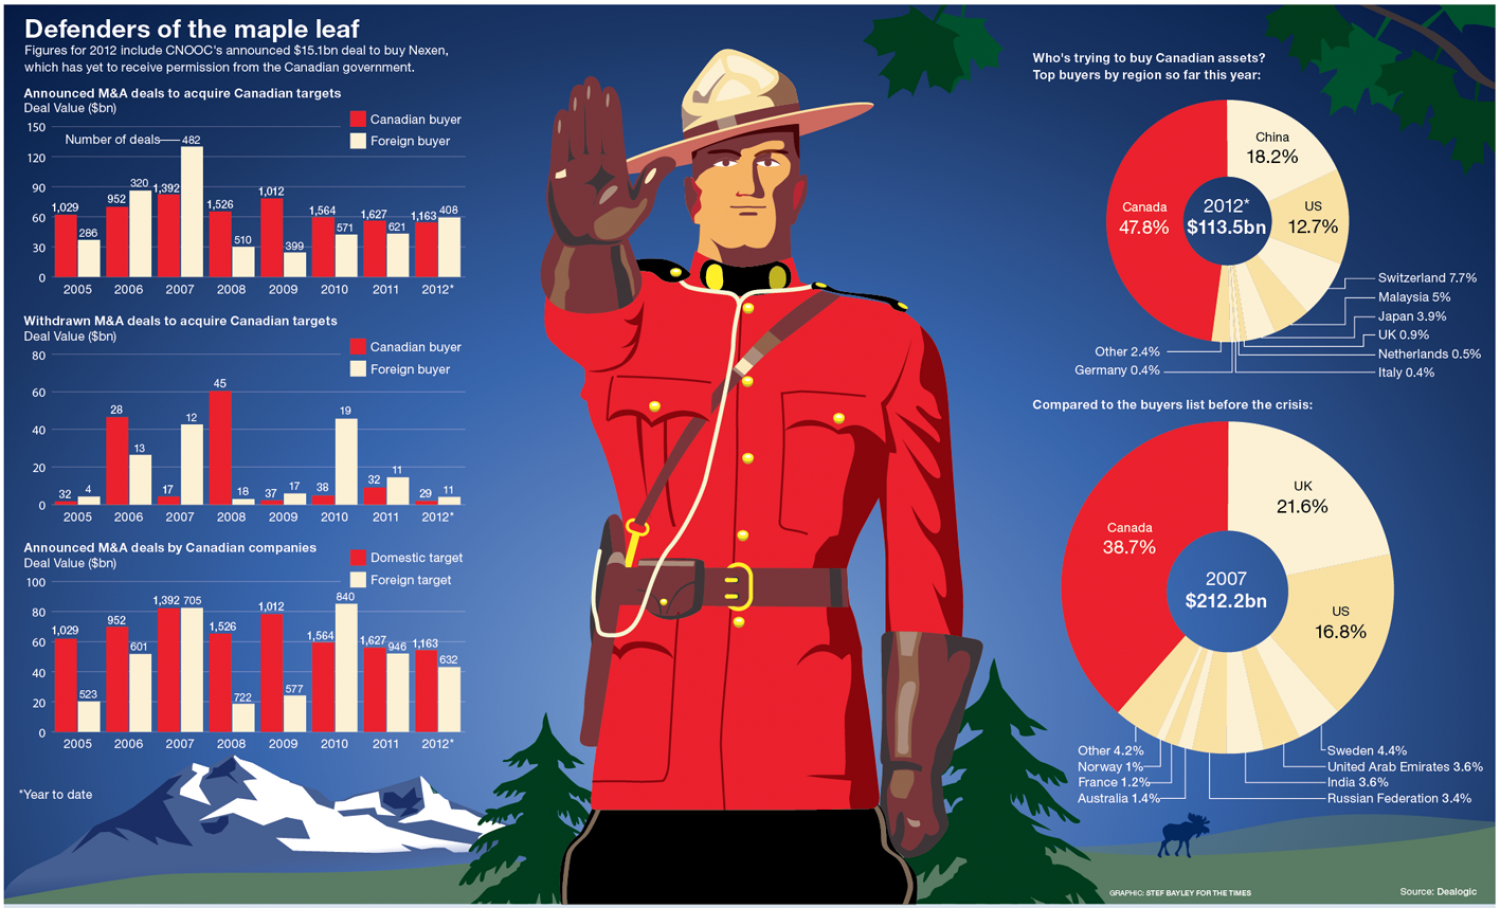 Defenders of the Maple Leaf Infographic